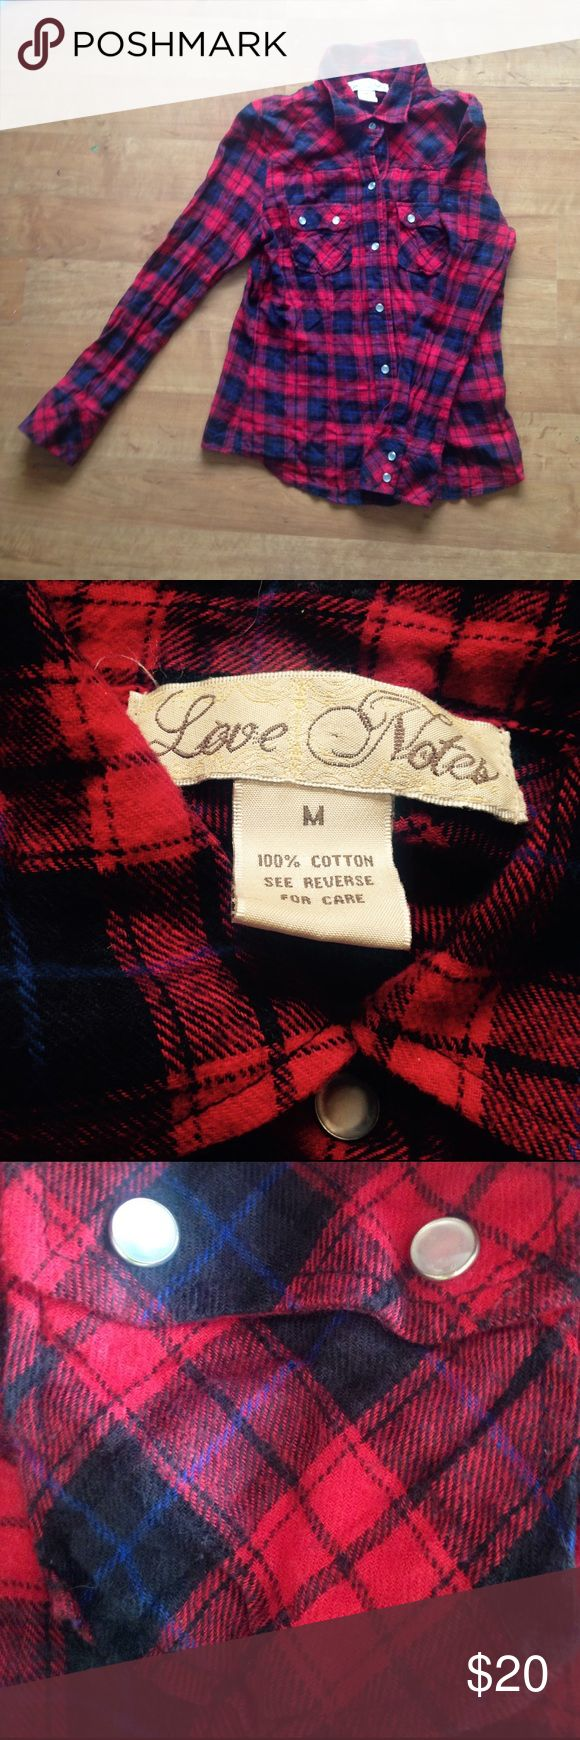 Love Notes Red Plaid Shirt size M Gorgeously soft red/blue/black plaid shirt by Love Notes. Bought at Nordstrom. Snap enclosure. Long sleeves. Never worn. 100% cotton. Love Notes Tops Button Down Shirts